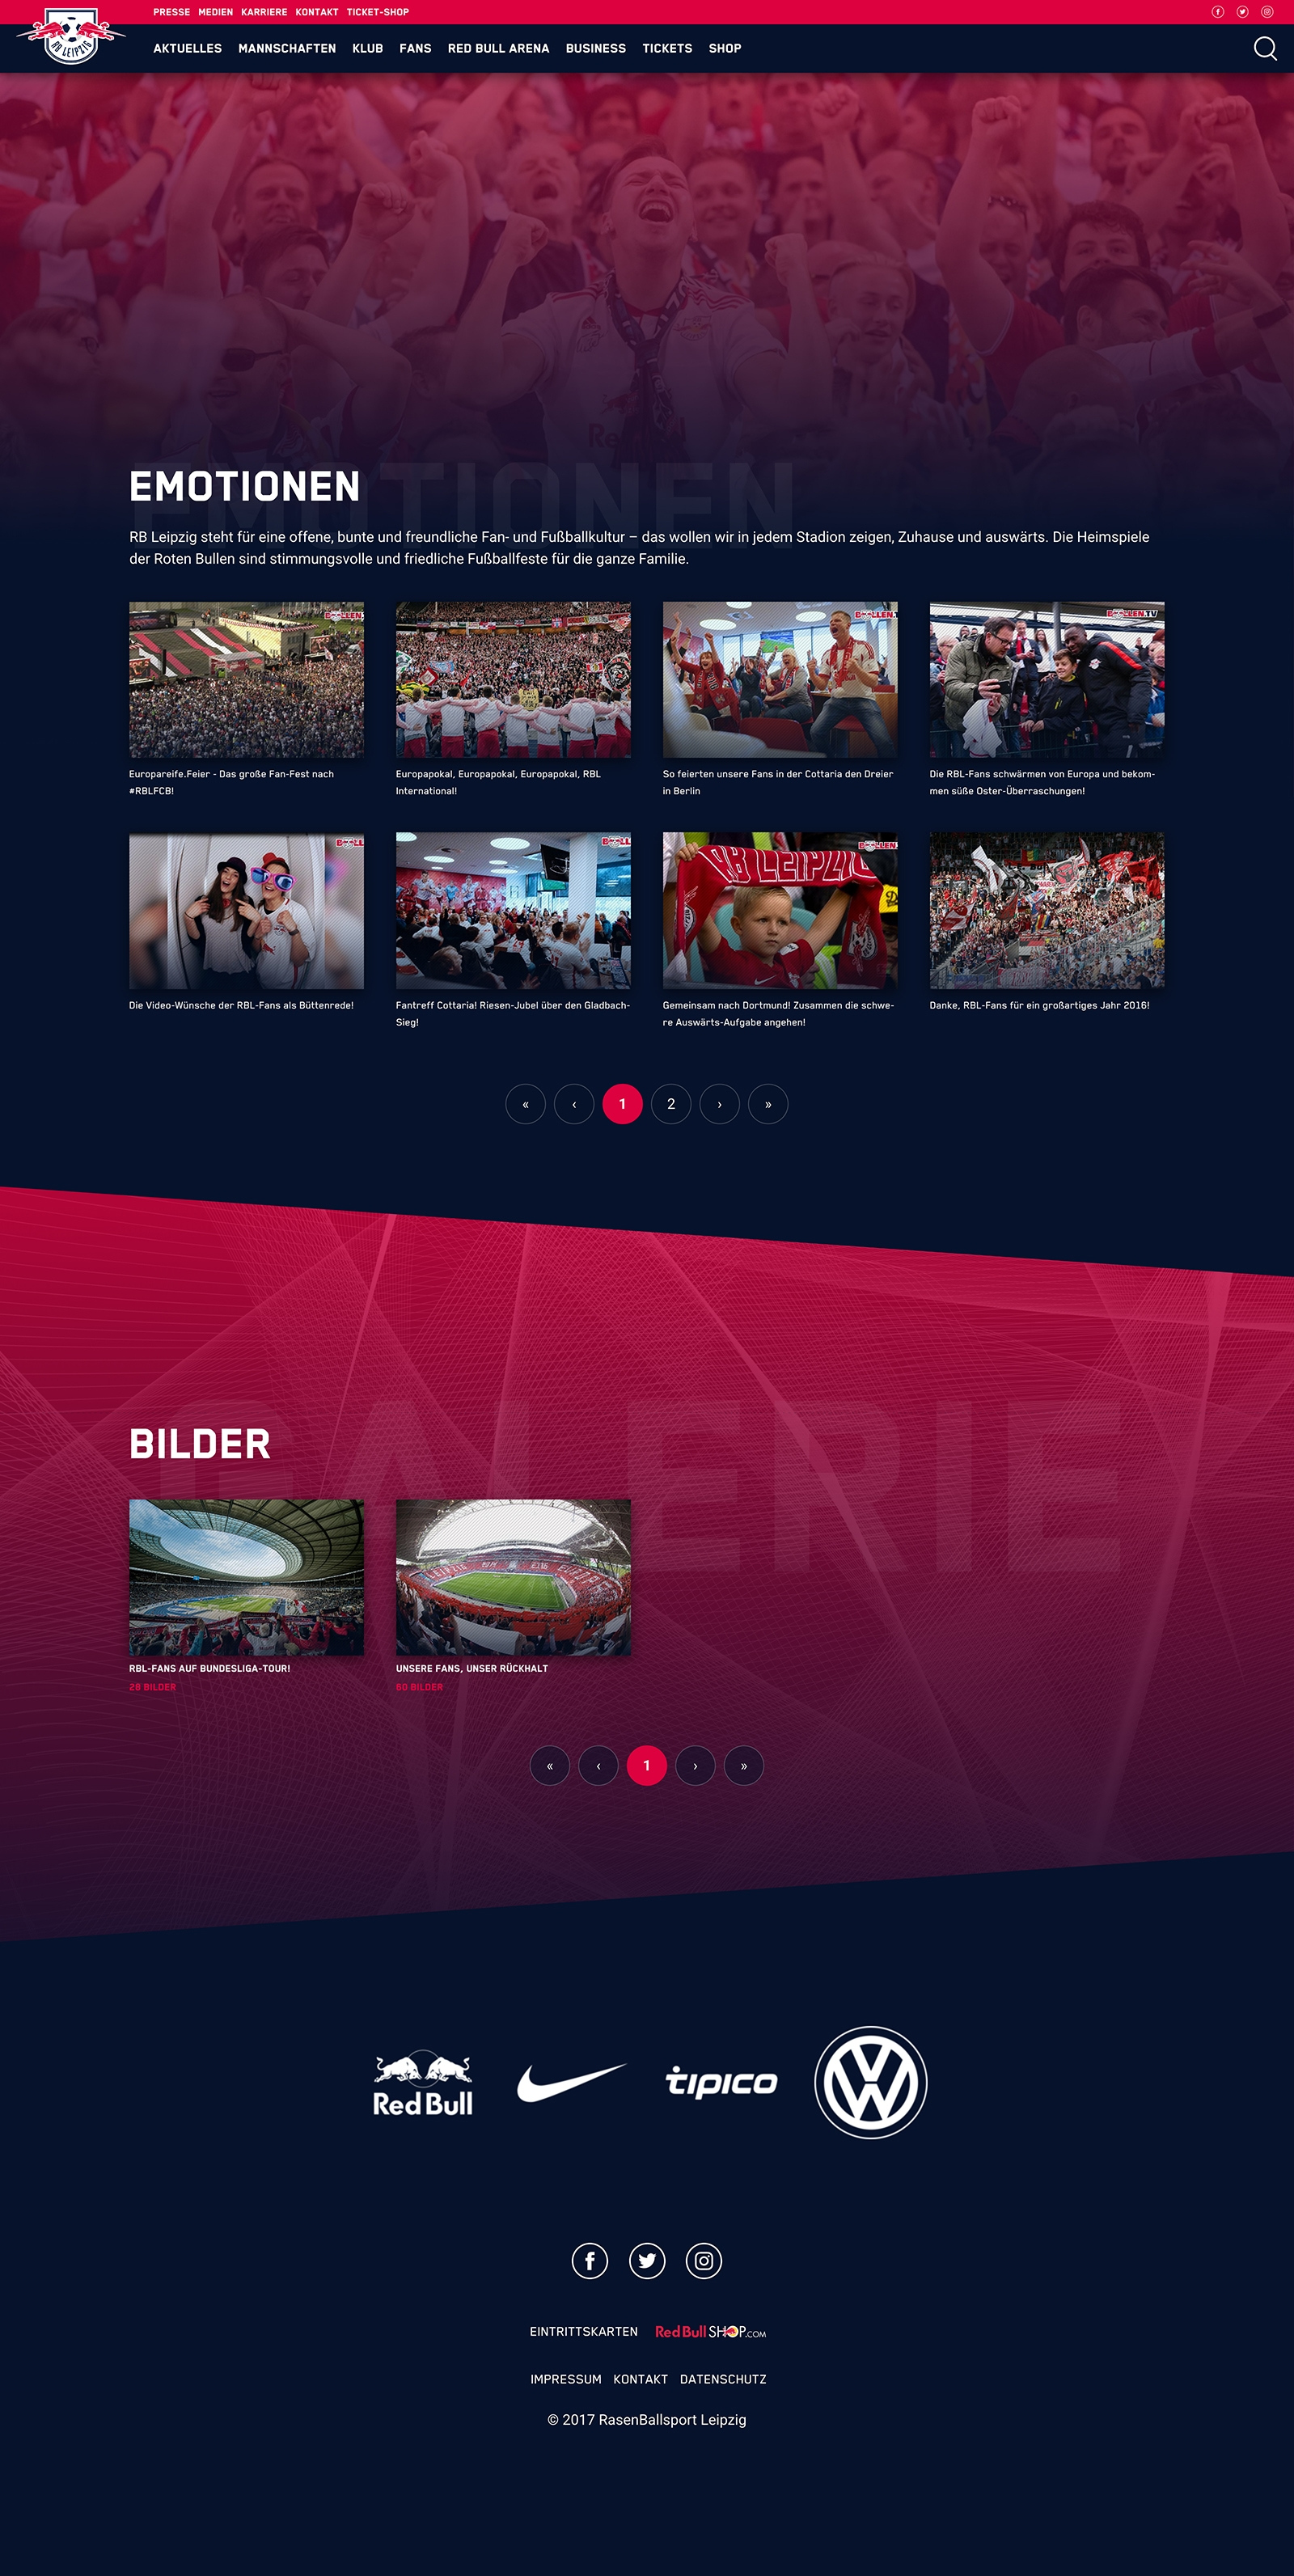 Rb Leipzig Website Relaunch 2017 Image 20